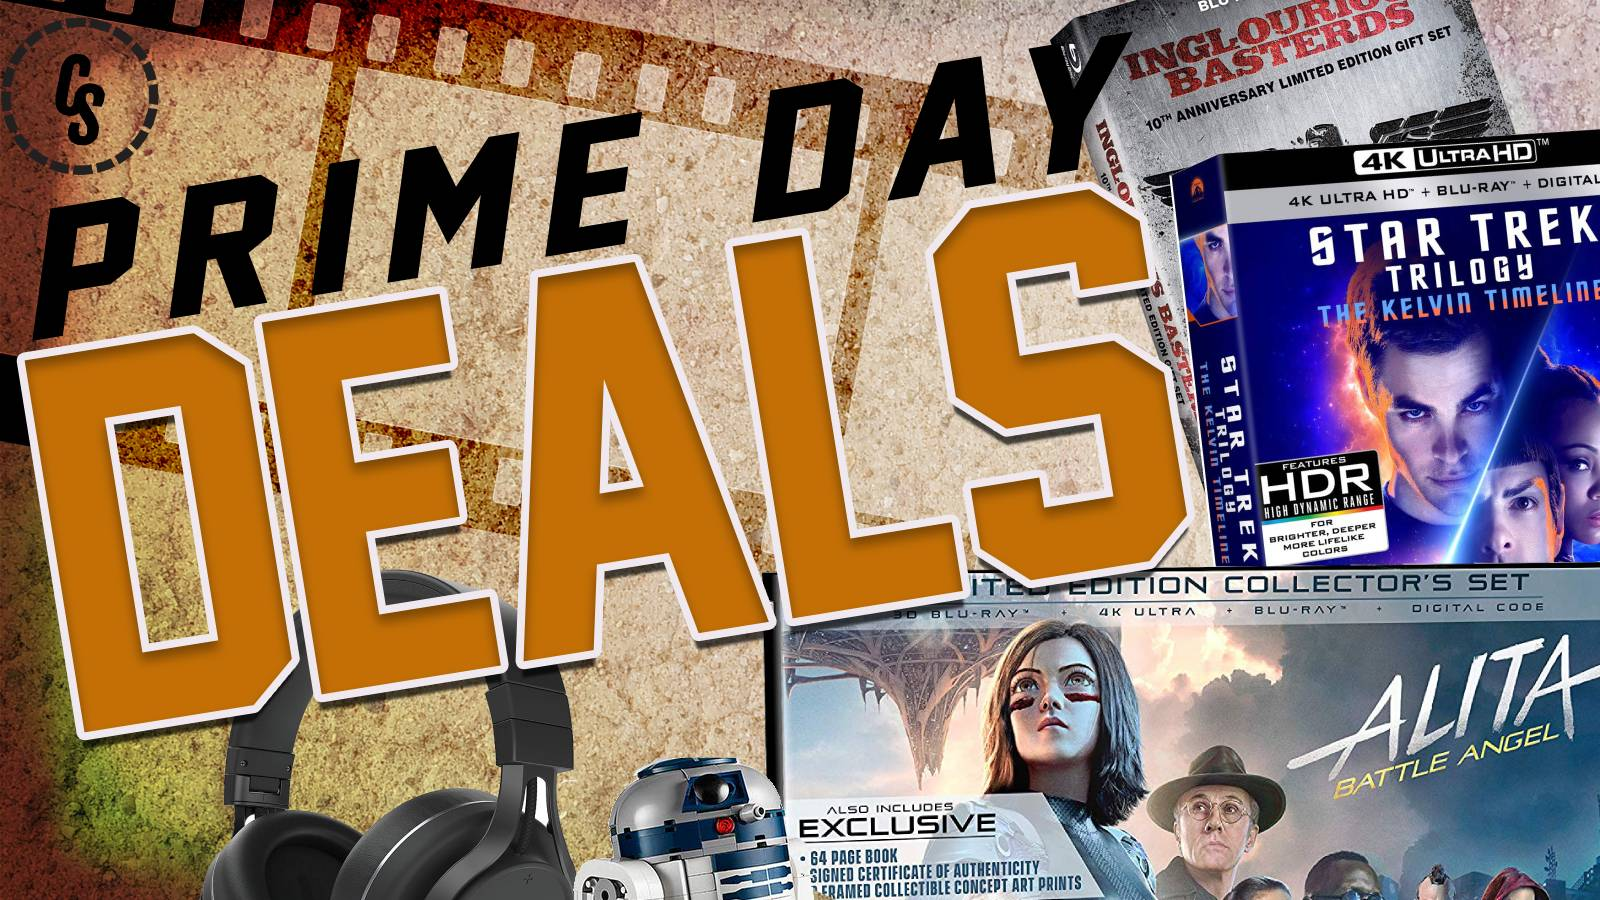 Prime Day Deals 2019: 4K TVs, Blu-ray, DVD Box Sets, and More!